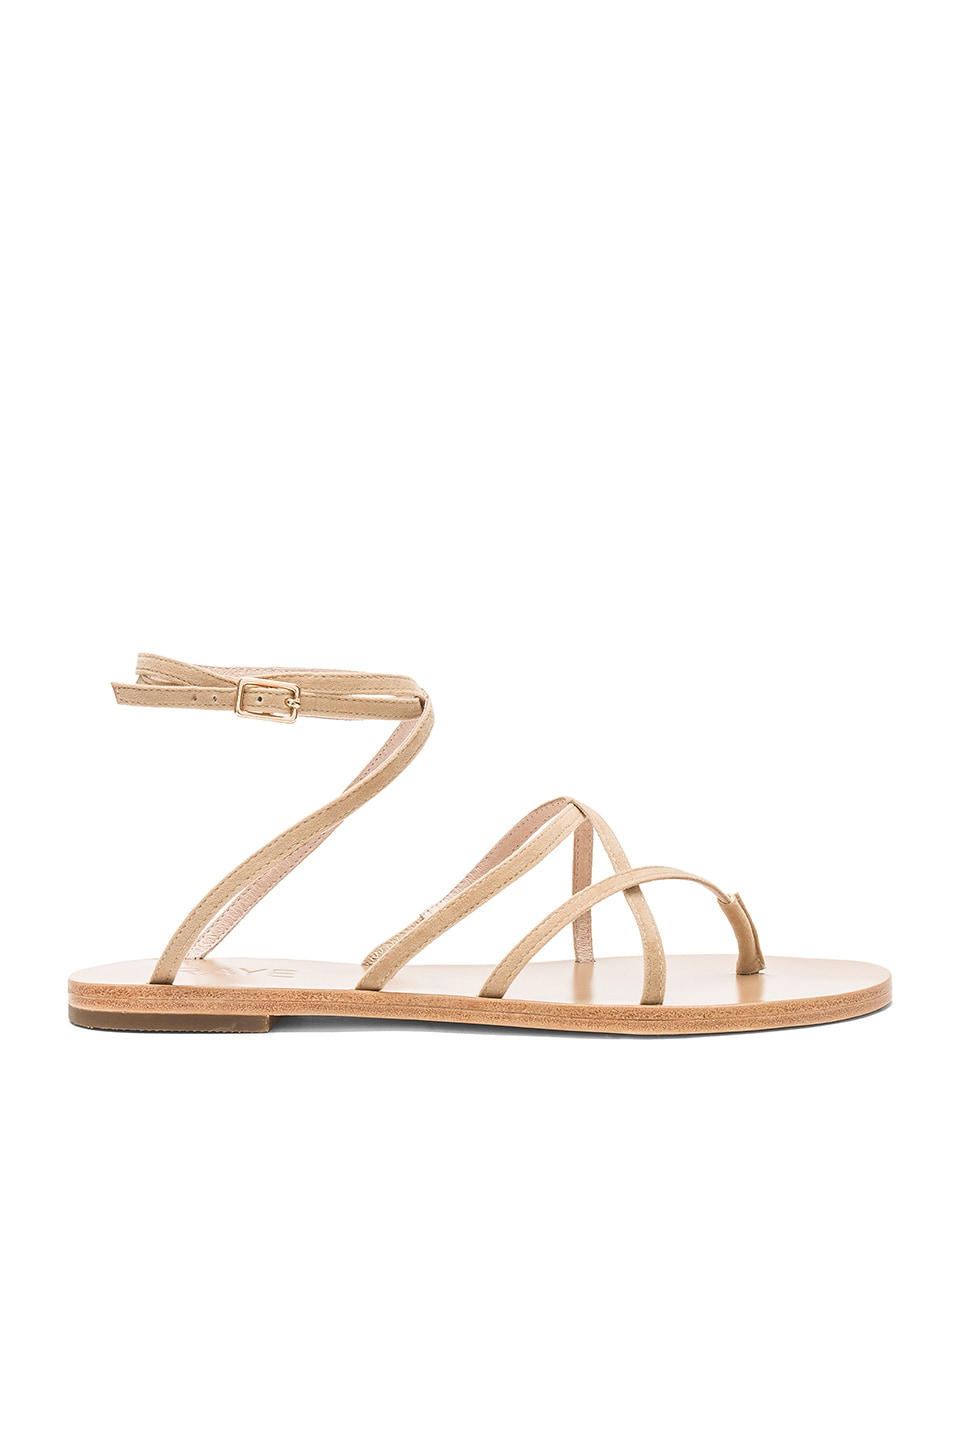 RAYE Coy Sandal in Tan